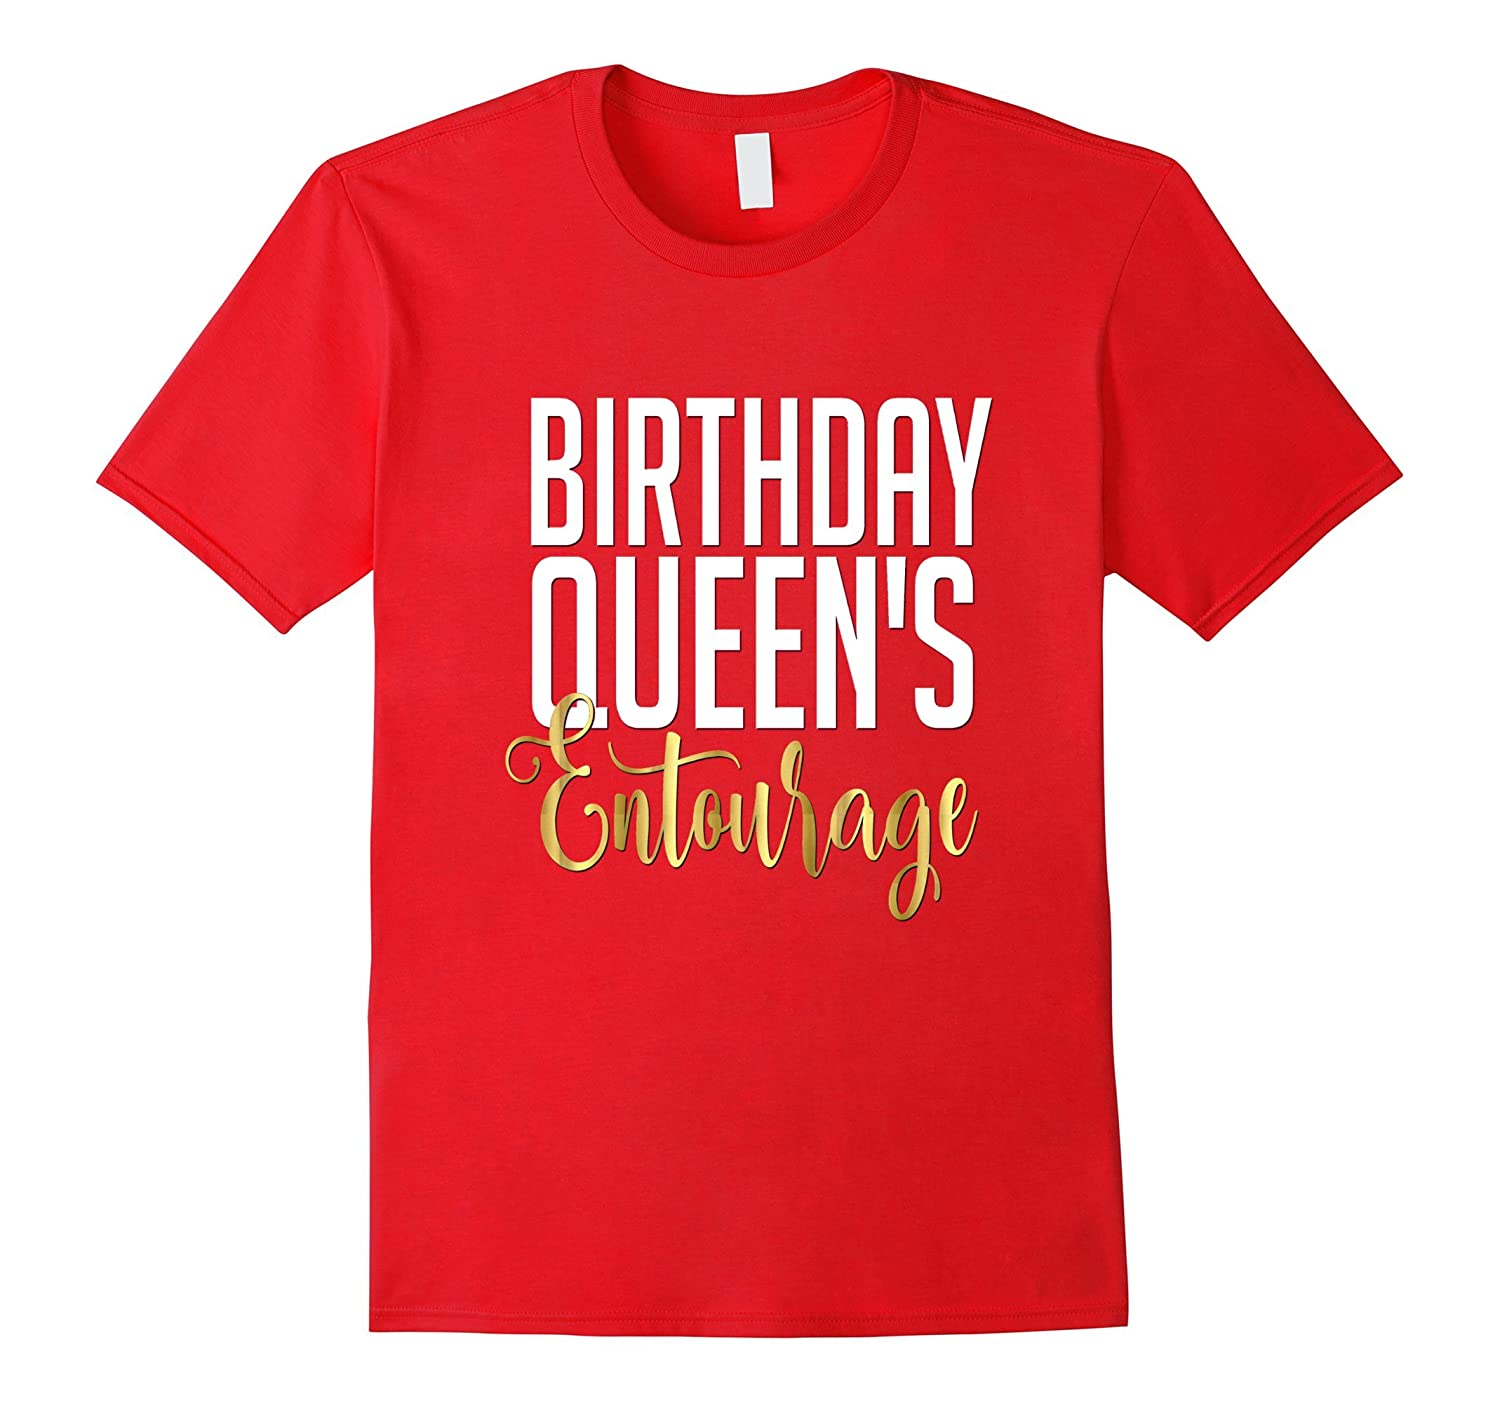 03b3ce54bfd7 Birthday Queens Entourage Shirt Gift Girly Gold Bestie Squad-TH - TEEHELEN